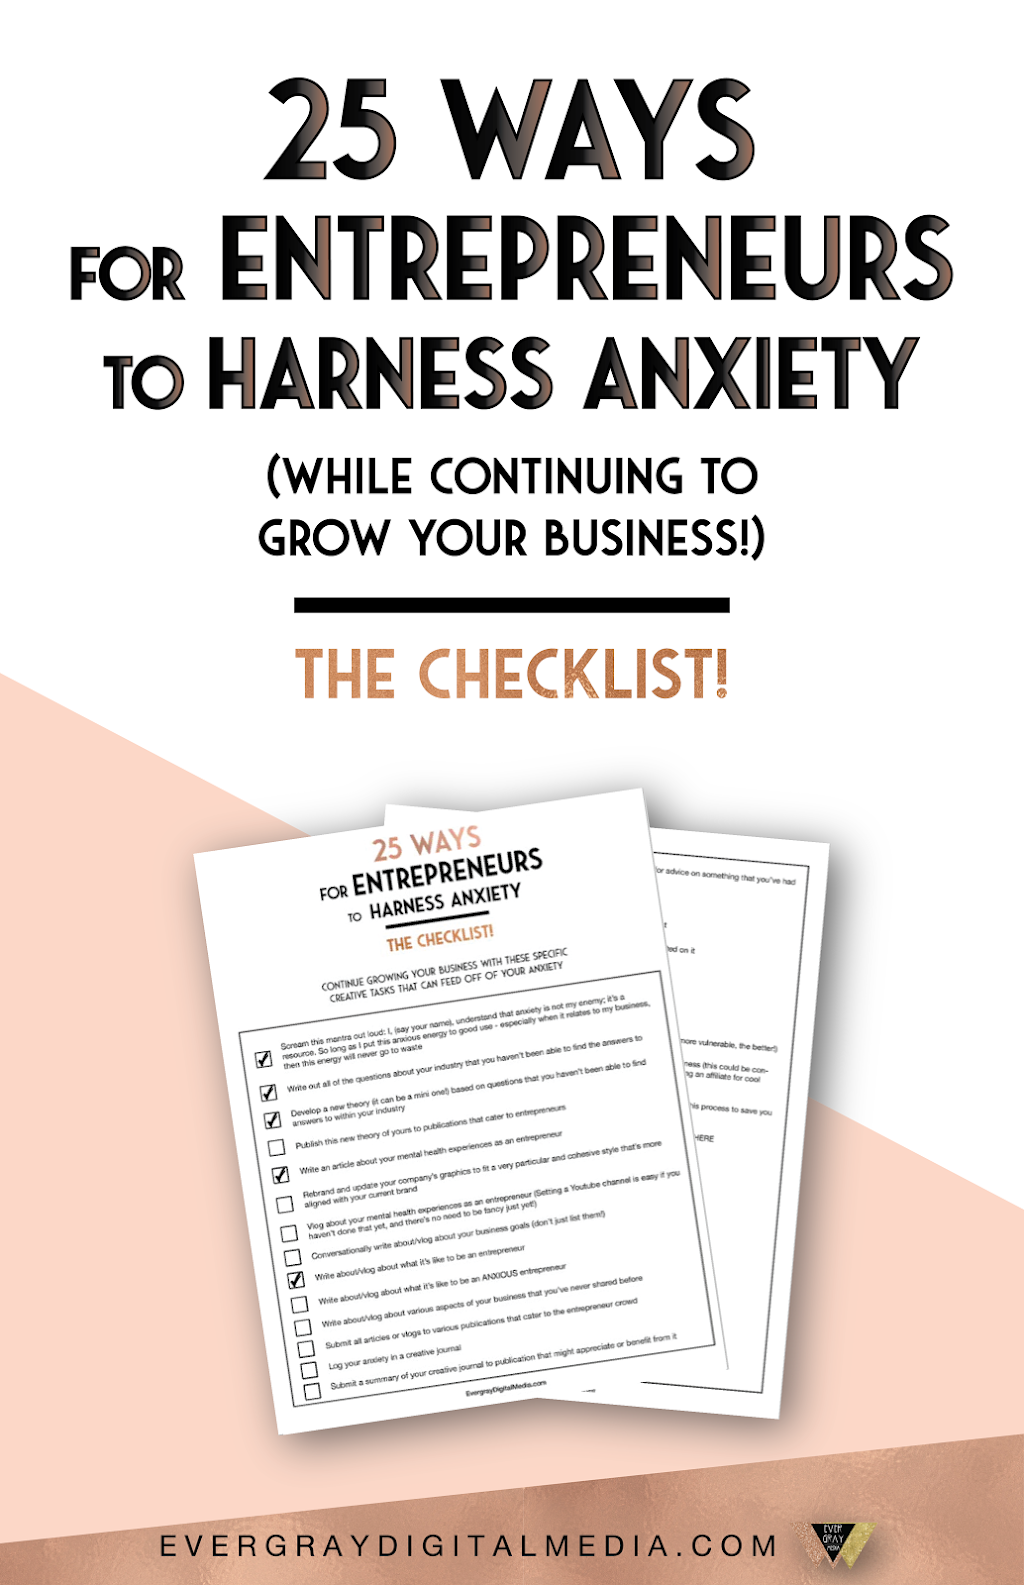 Want to channel your anxiety and creatively grow your business? Download the 25 Ways for Entrepreneurs to Harness Anxiety Checklist! The tasks listed are specific and creative, and are meant to trigger a creative mental process instead of just unproductive anxiety - Evergray Media